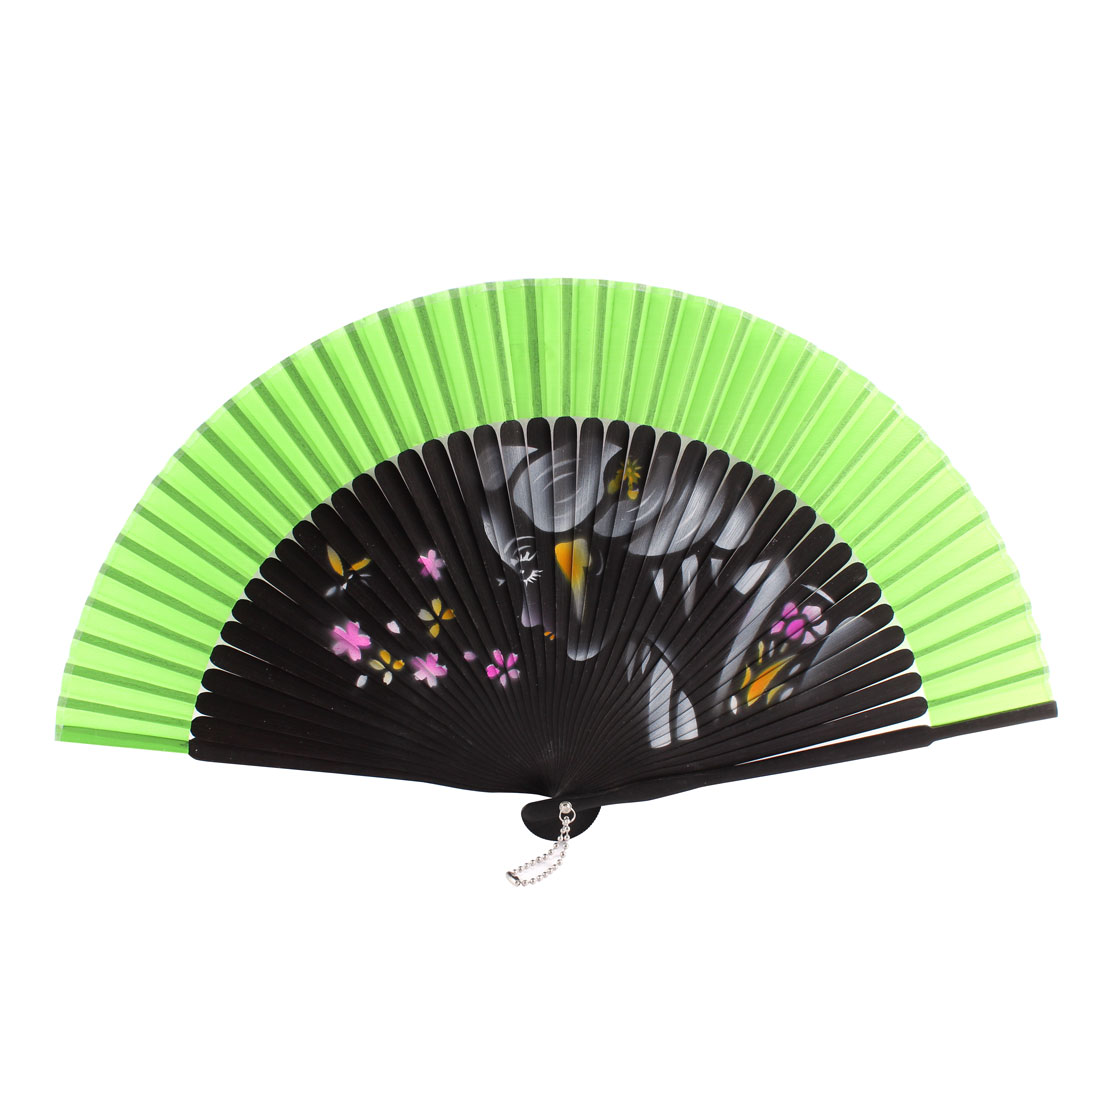 Summer Wedding Dancing Party Girl Flower Pattern Nylon Bamboo Rib Folded Hand Fan Gift Decoration Green Black